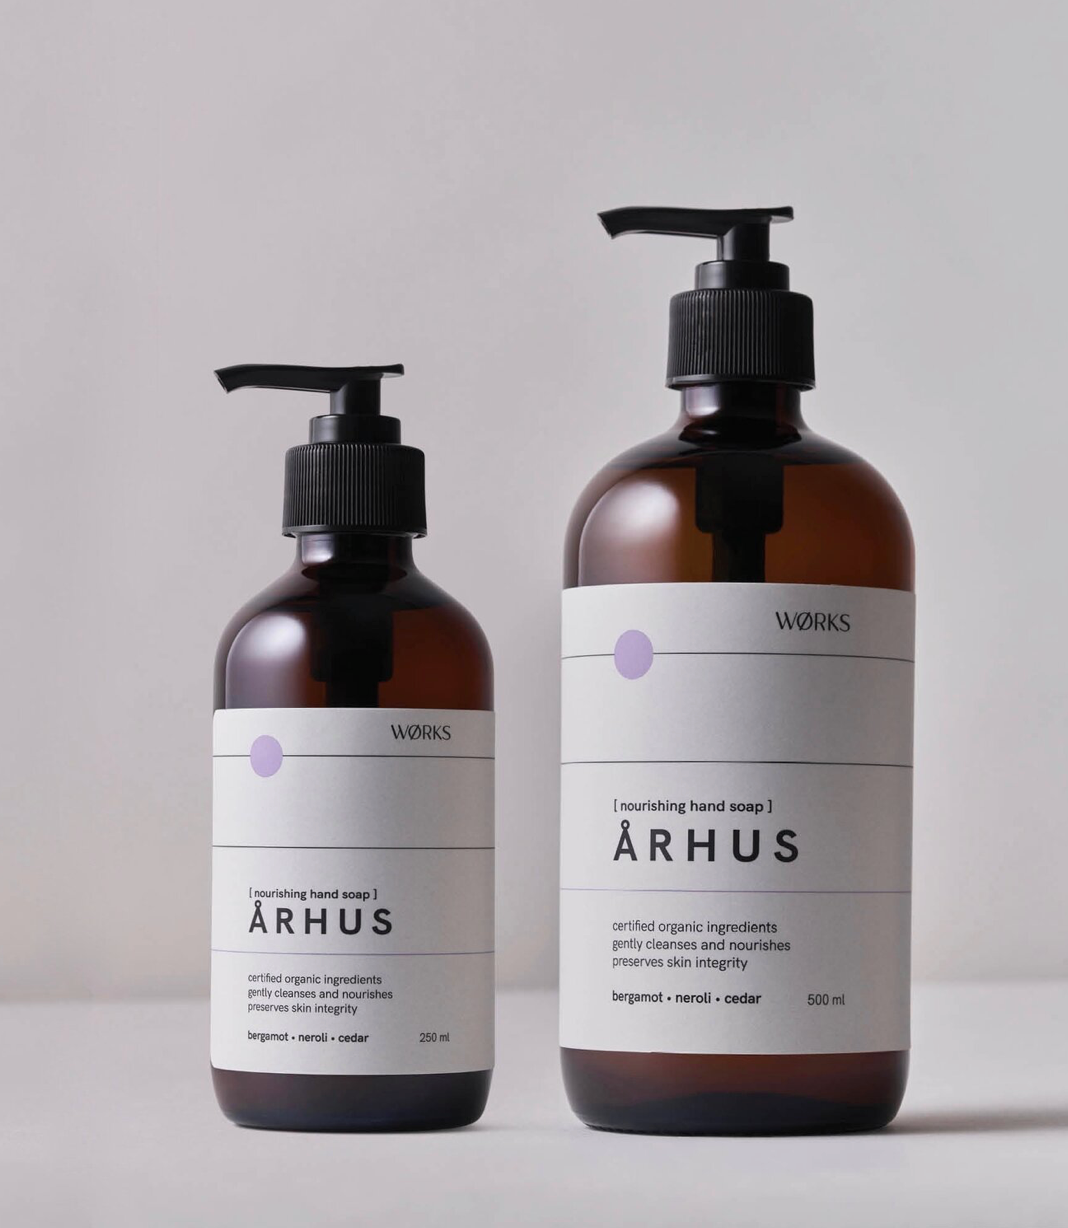 ARHUS Nourishing Hand Soap (6650875248828)